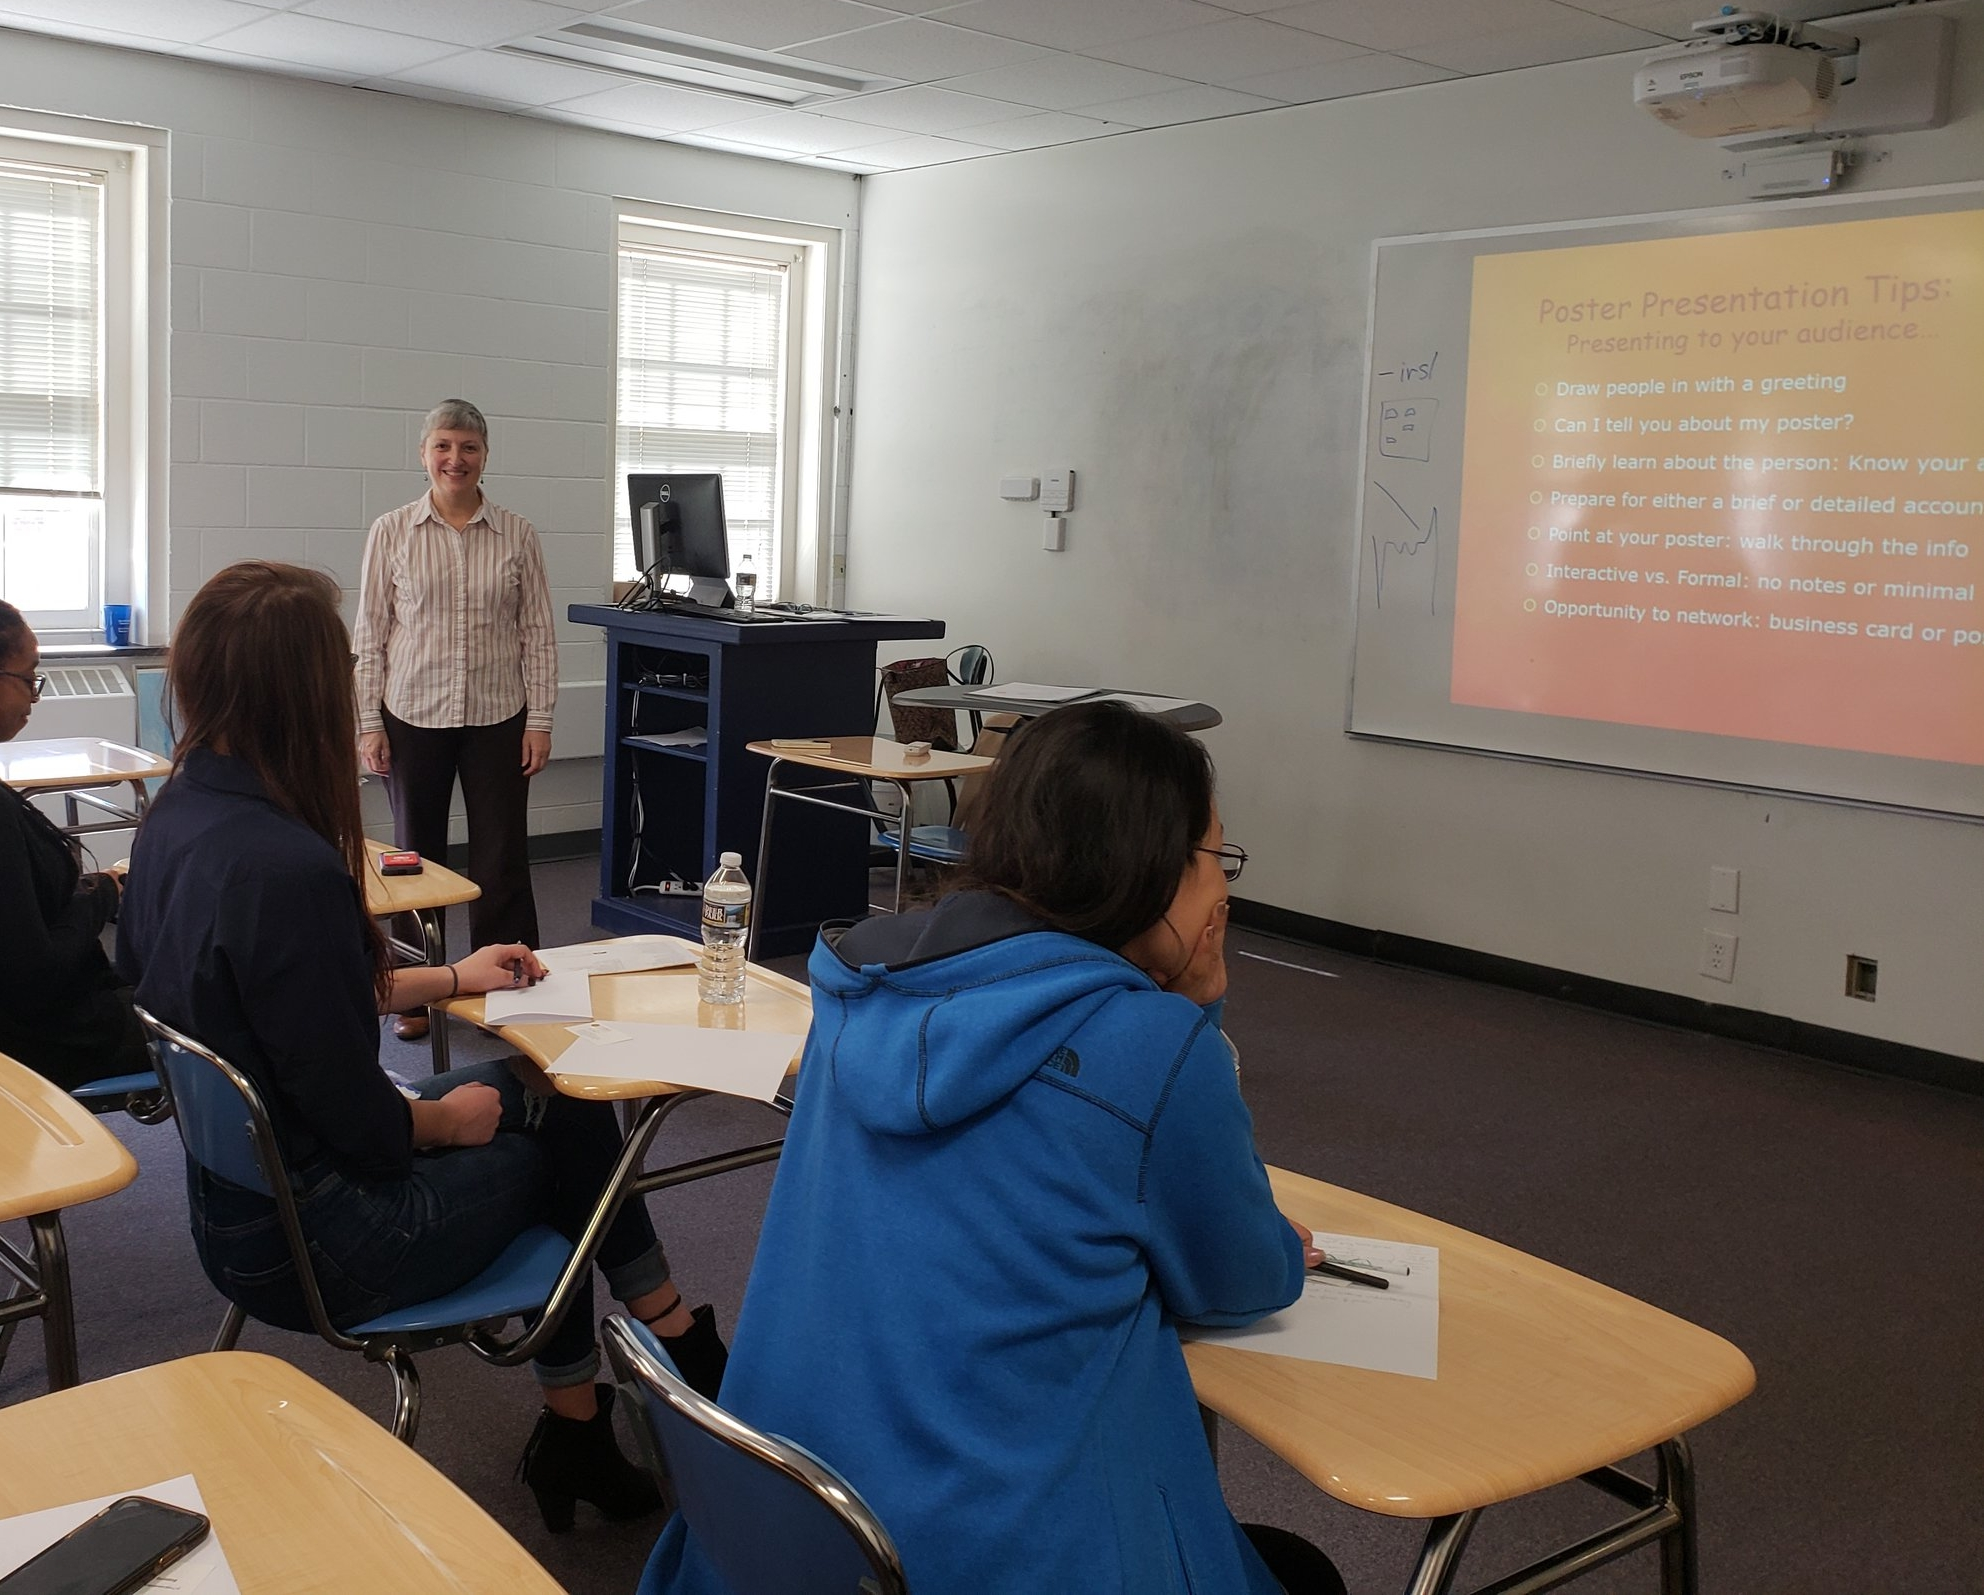 Dr. Karen Guzman shares tips on how to give great scientific presentations at the workshop. -